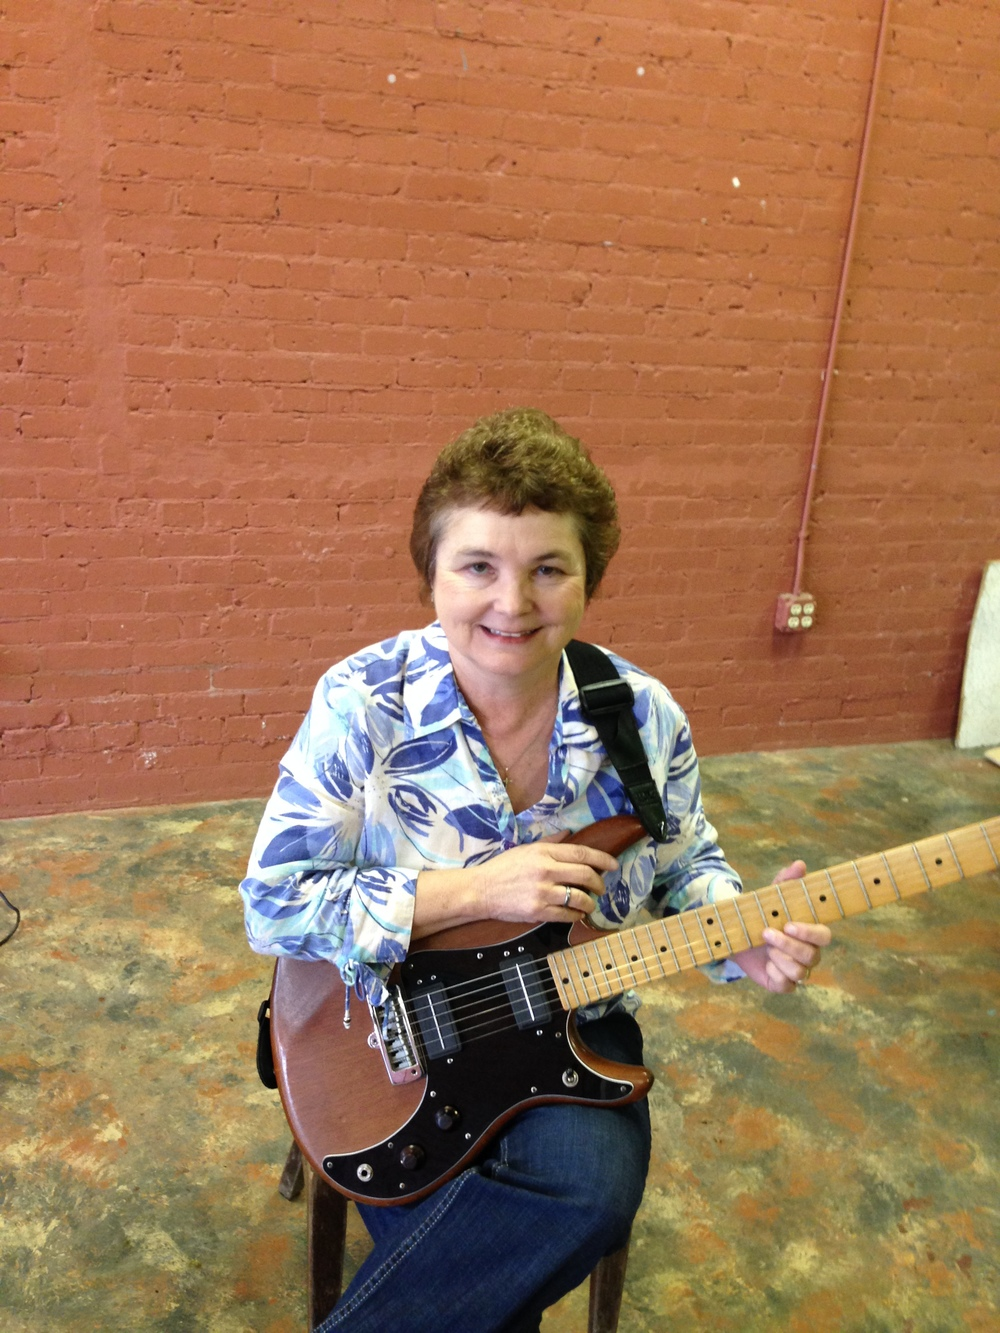 """""""I am a new guitar student and started taking lessons from Stuart in March 2015. He is very knowledgeable, patient and helpful. Stuart is a great teacher and I enjoy my lessons and would highly recommend him!""""                                 -Mary Ann Wylie"""